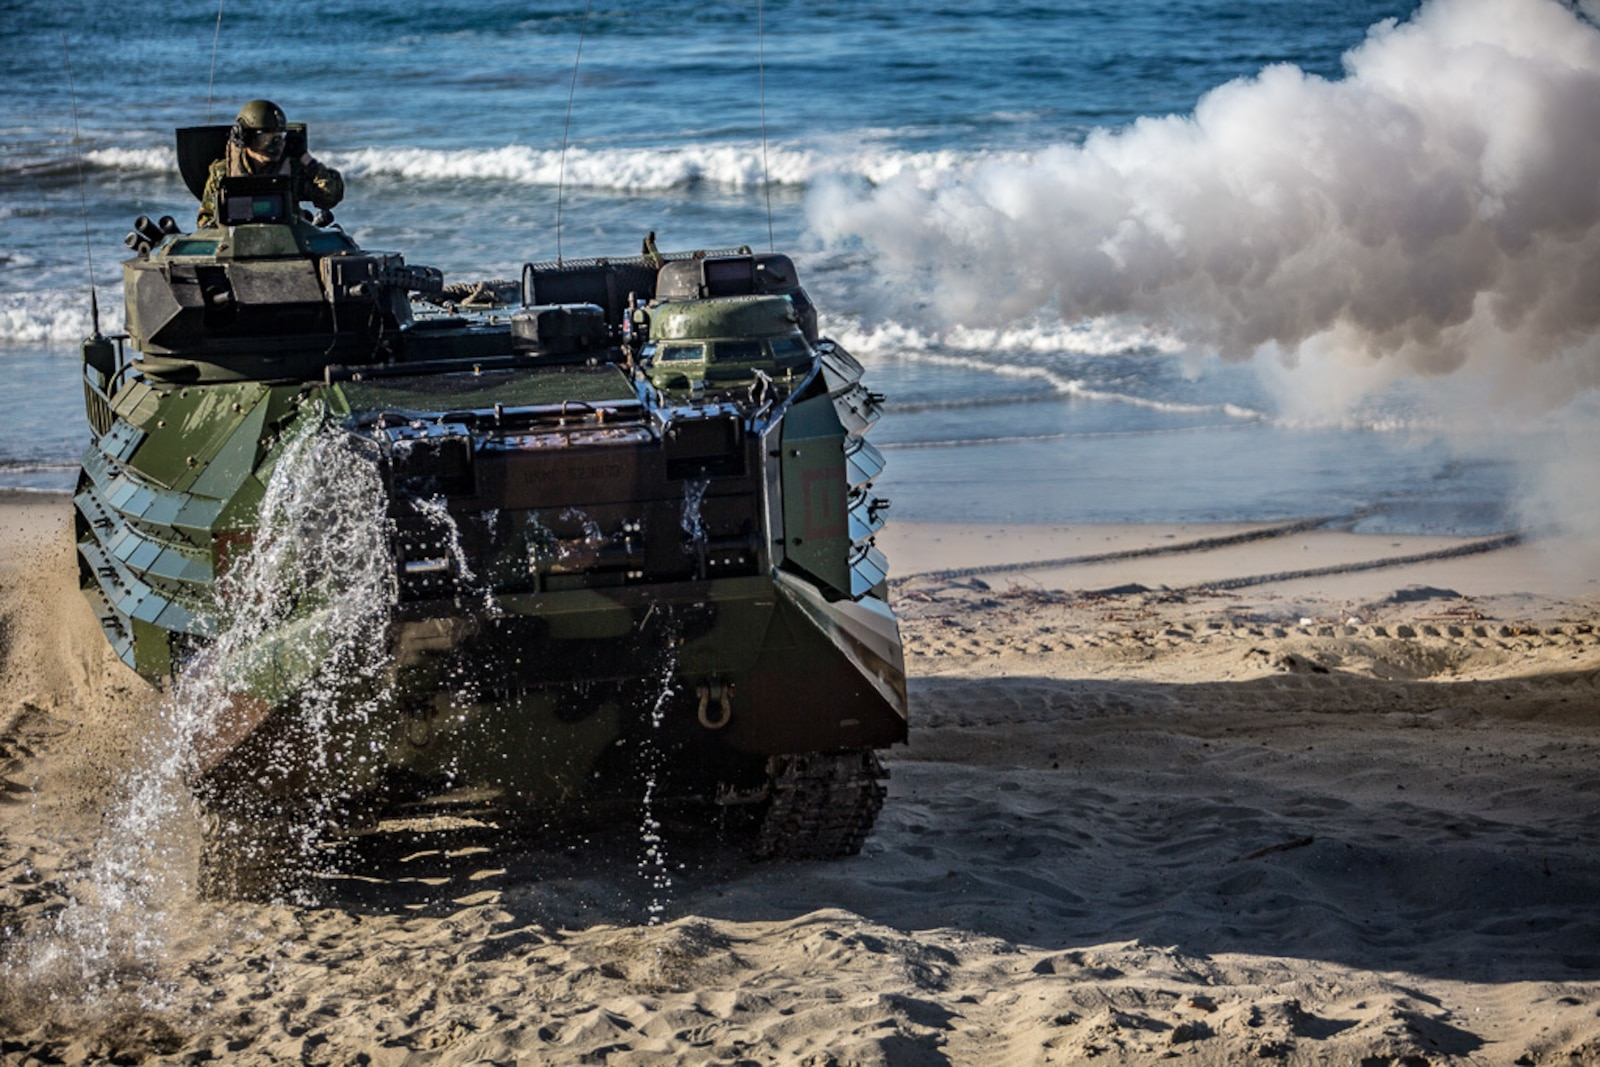 An Amphibious Assault Vehicle with 3rd Assault Amphibian Battalion, 1st Marine Division, lands on Marine Corps Base Camp Pendleton as part of exercise Iron Fist 2018 on Feb. 5.